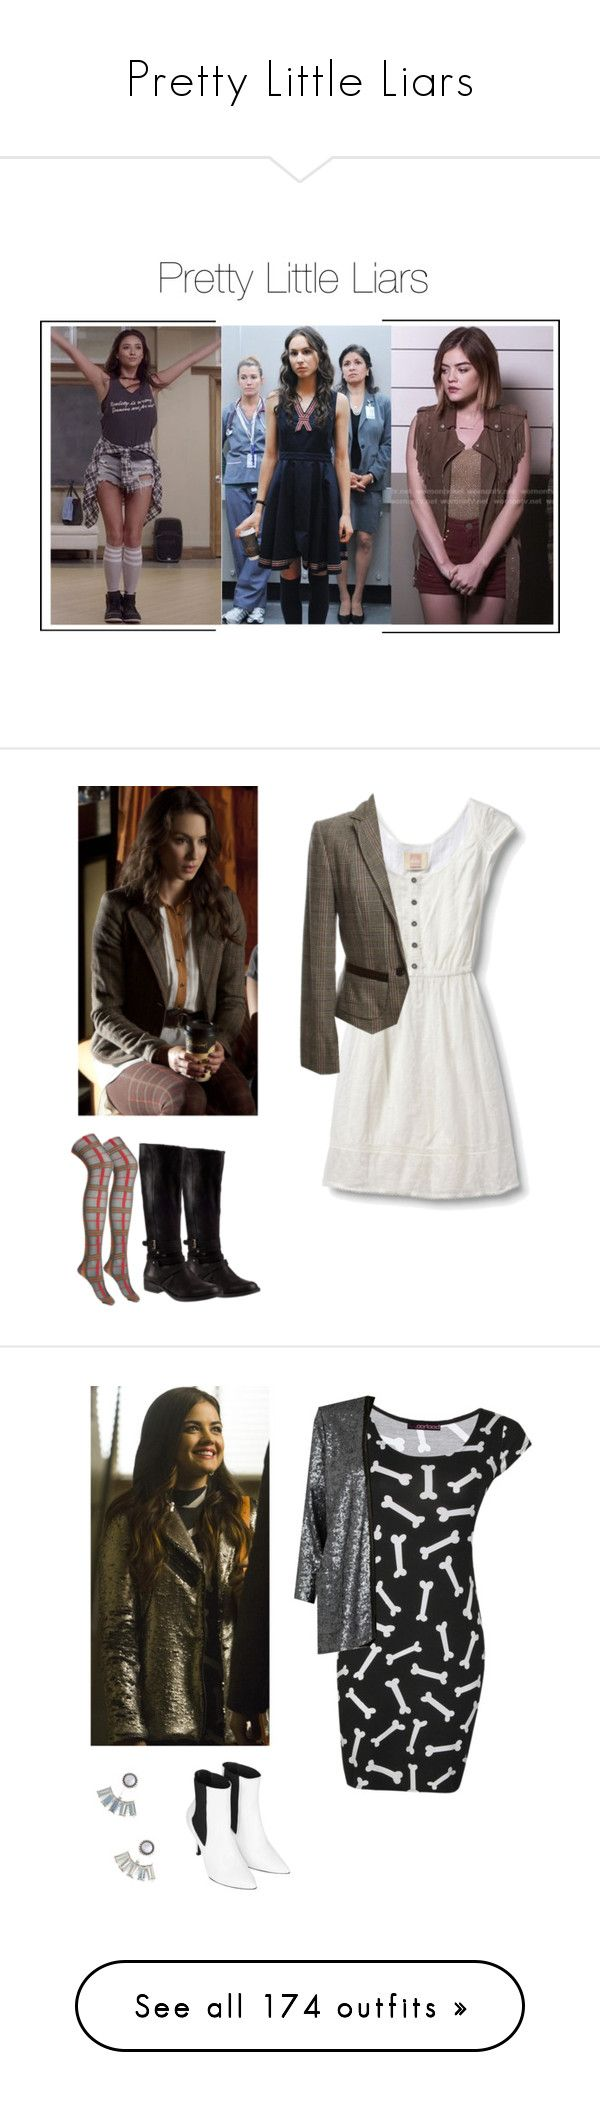 """""""Pretty Little Liars"""" by shadyannon ❤ liked on Polyvore featuring Forever 21, Quiksilver, Steve Madden, MARC CAIN, Aéropostale, Boohoo, Episode, River Island, Topshop and J Brand"""